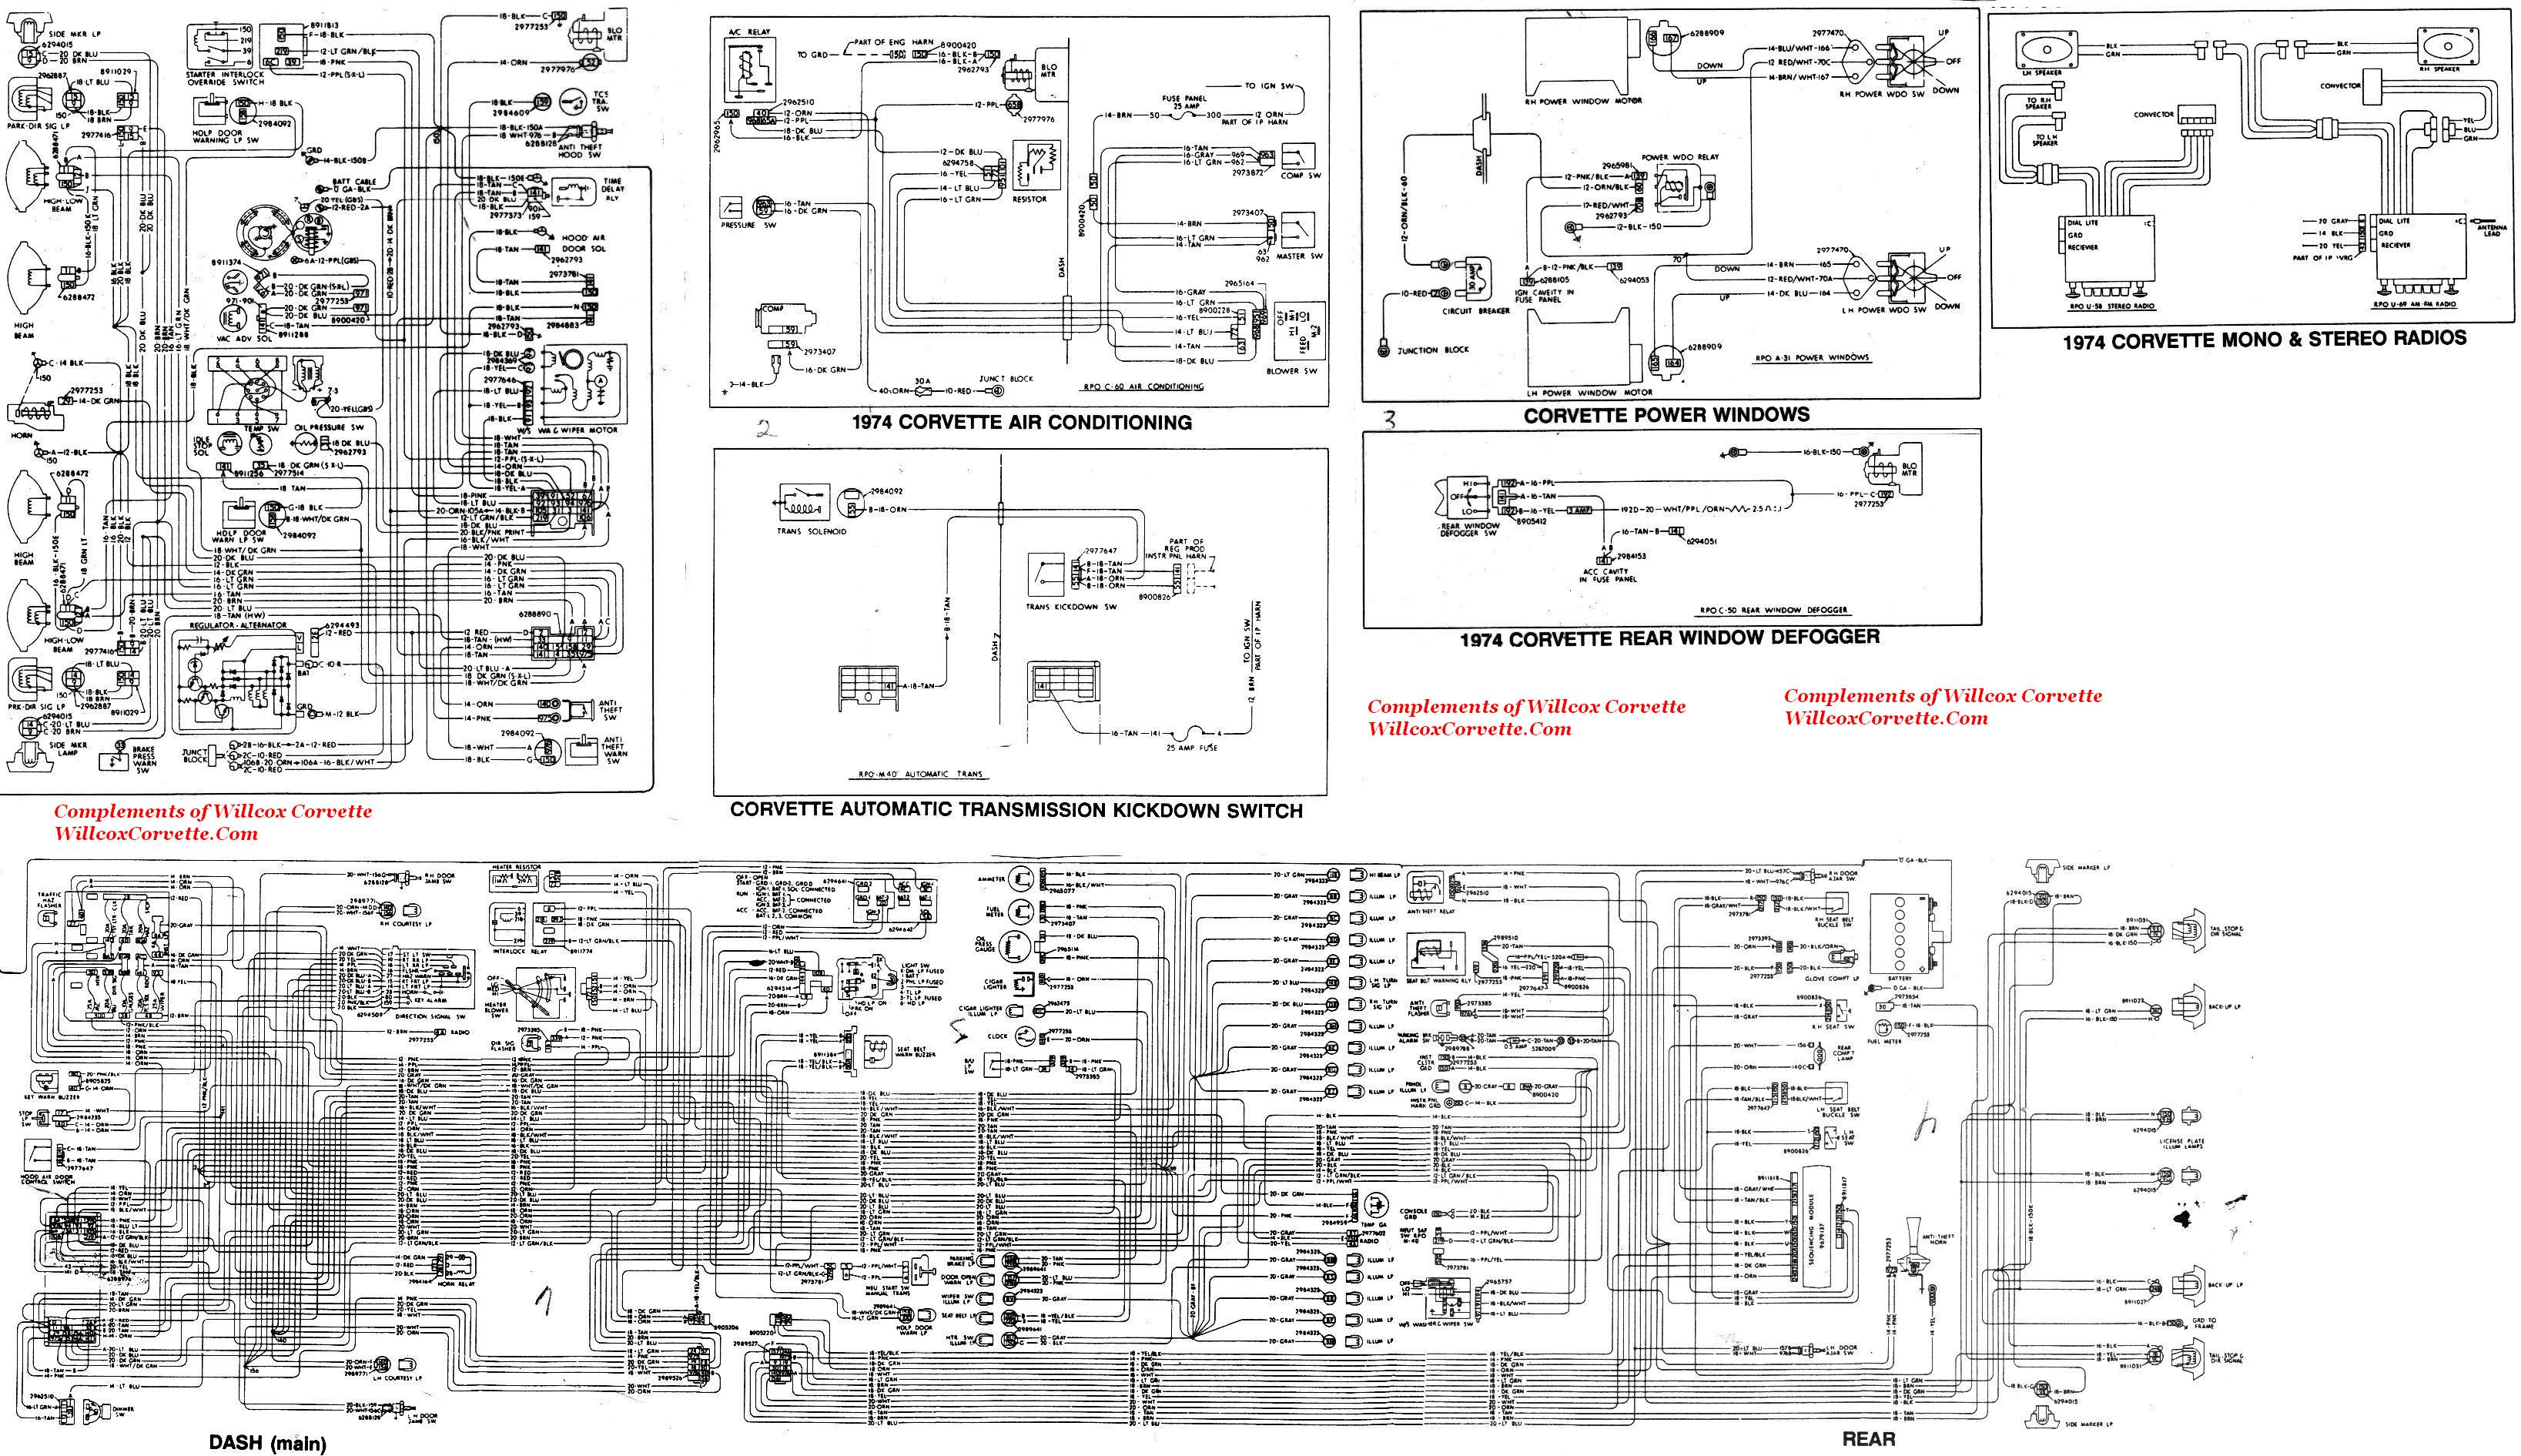 1974 Corvette Factory Wiring Schematic | Willcox Corvette ...